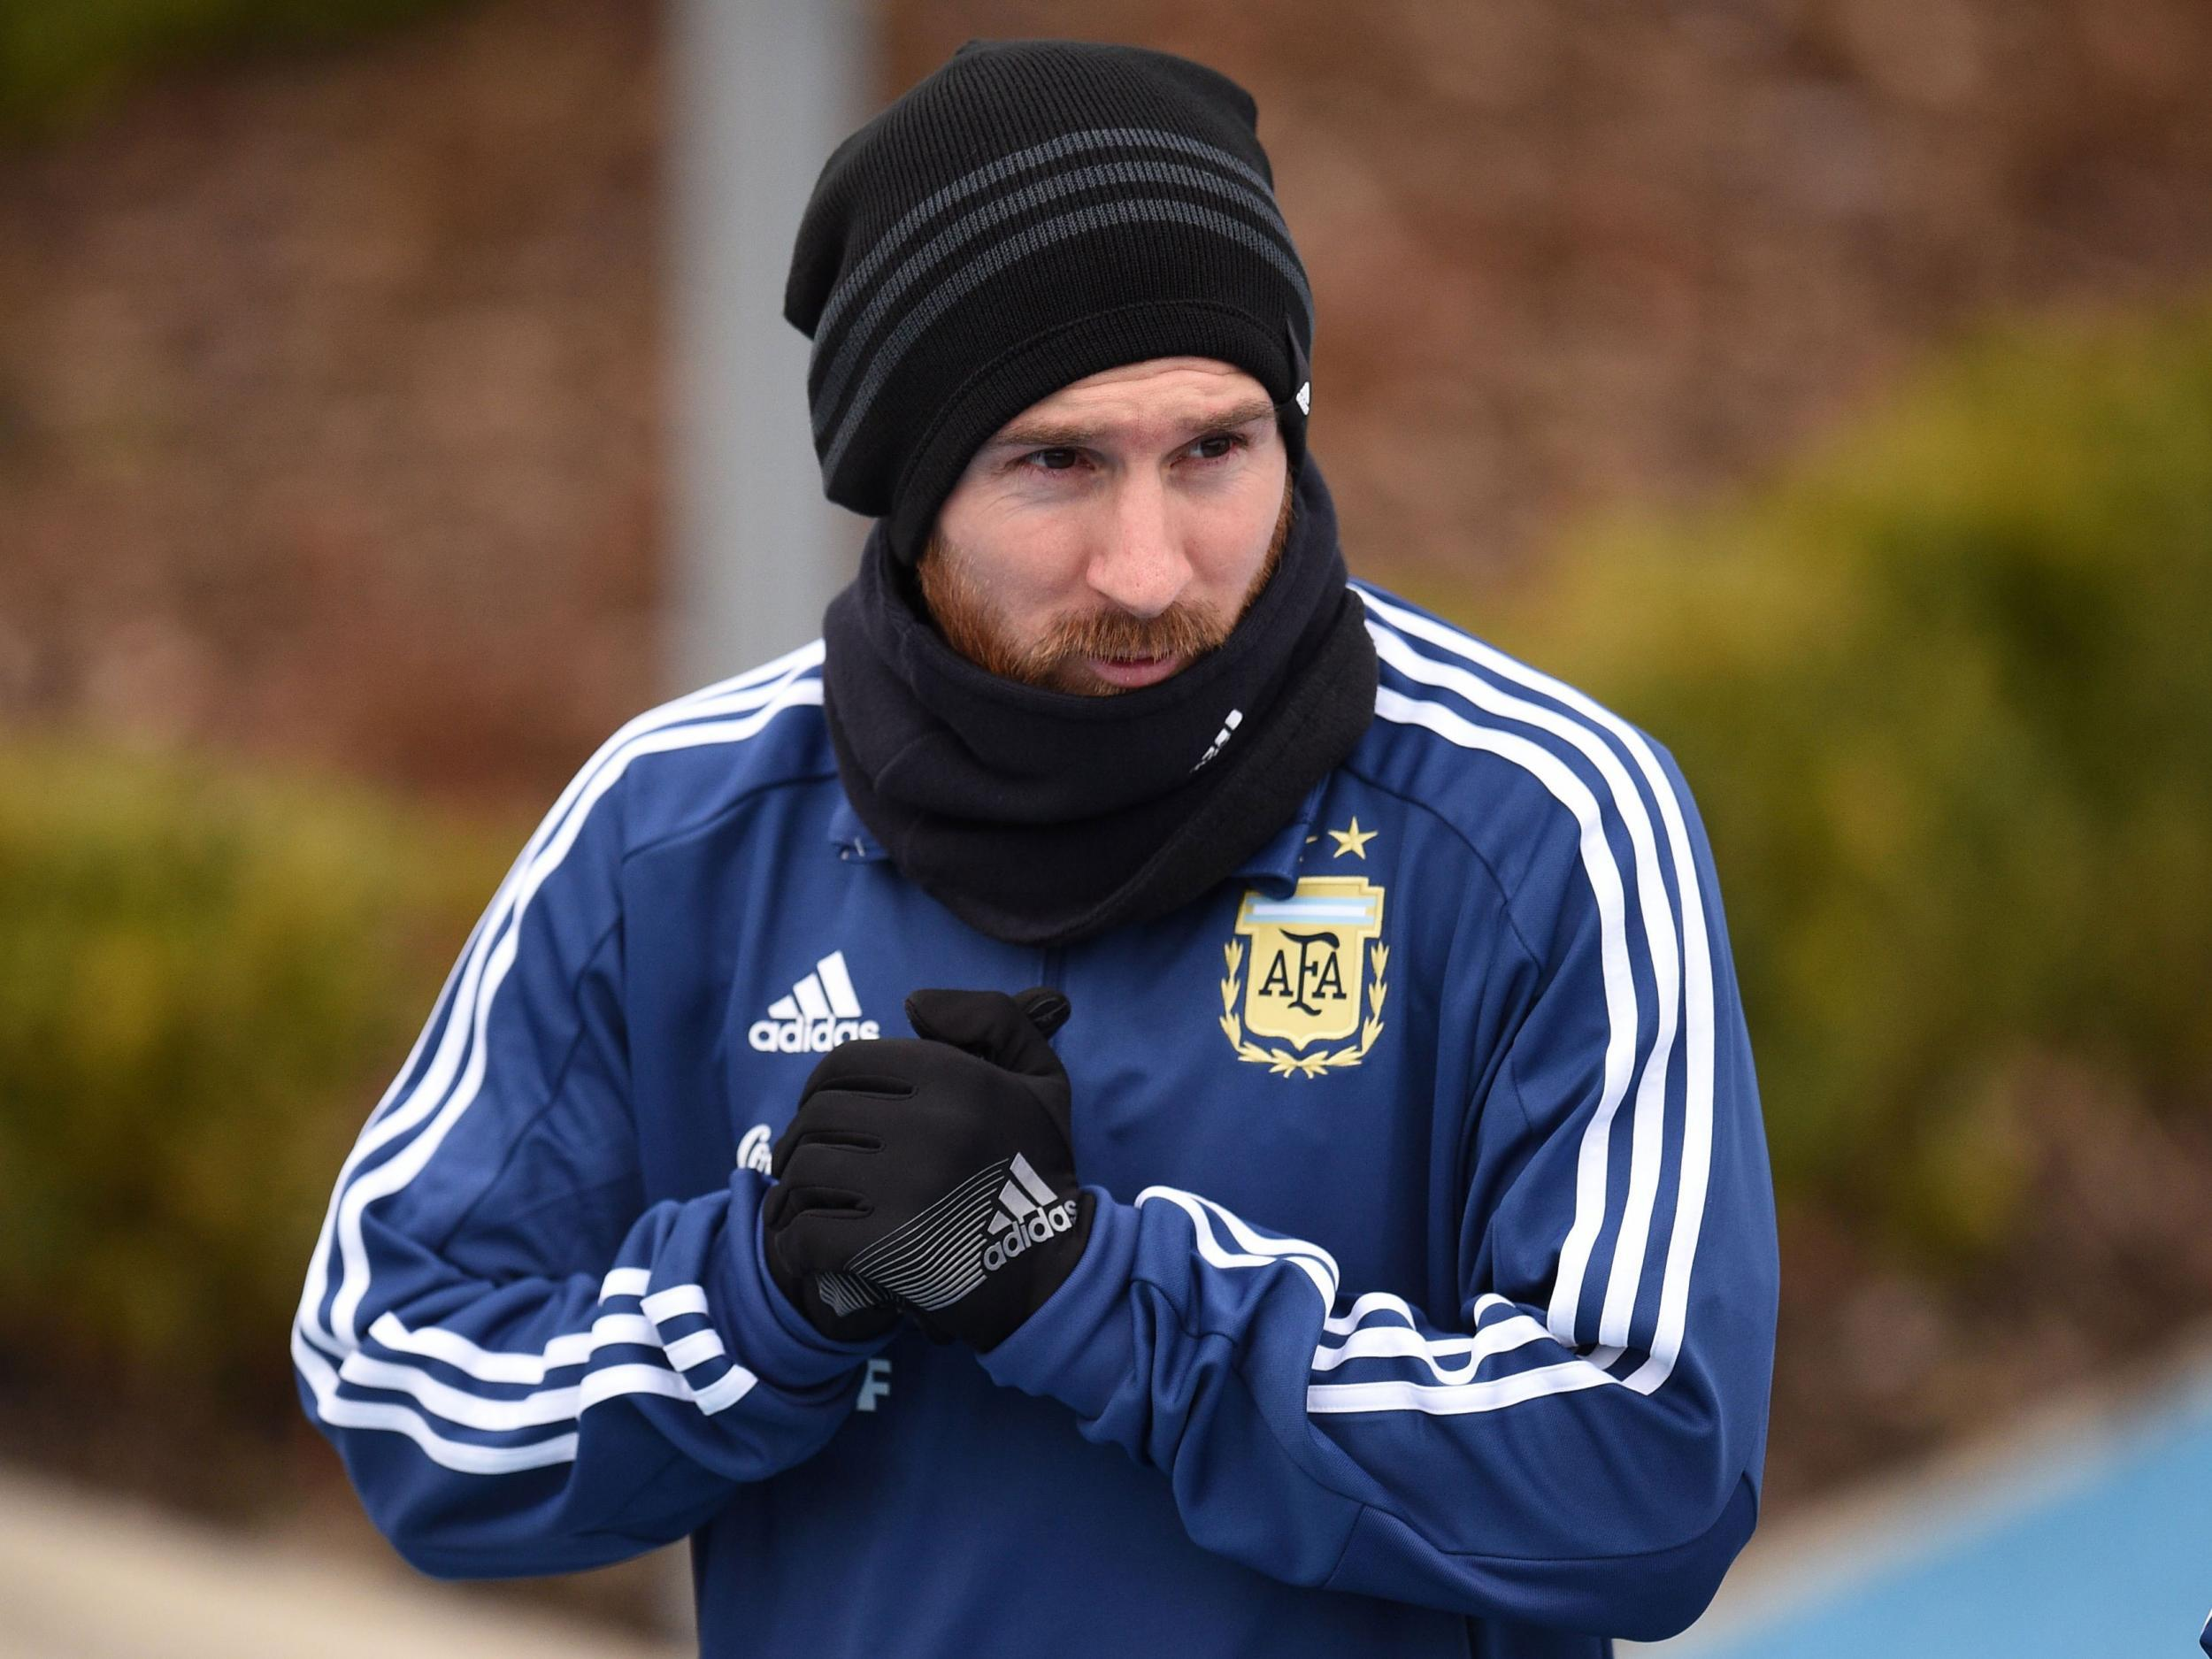 Argentina will be 'Lionel Messi's team' at the World Cup, says Jorge Sampaoli